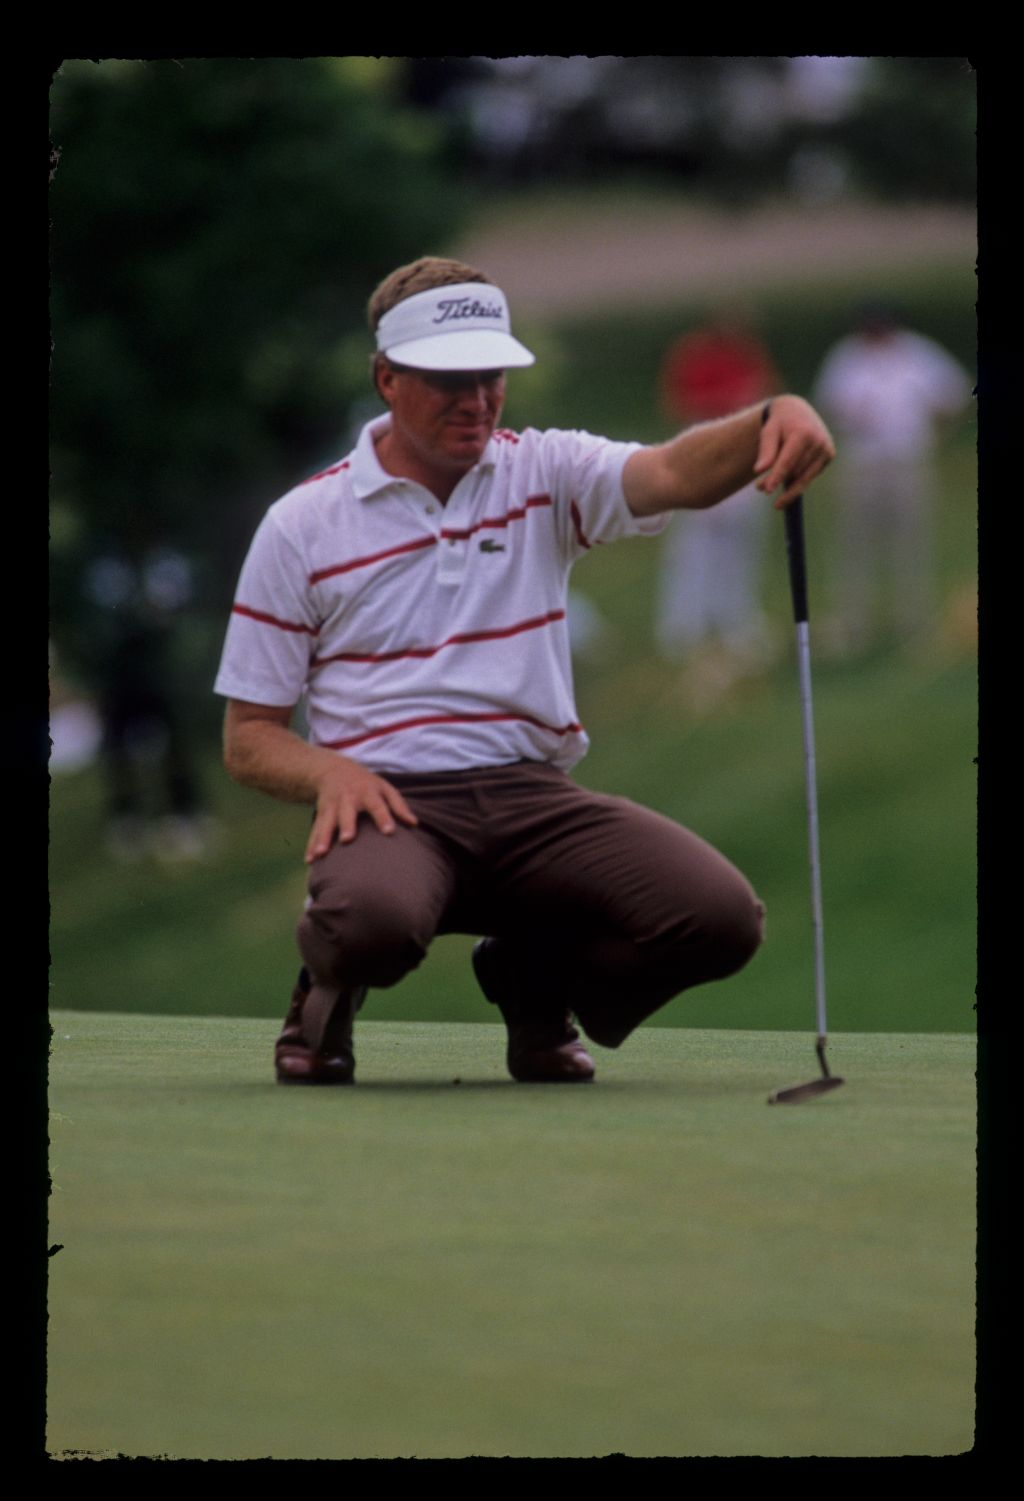 Steve Elkington lining up a putt during the 1989 US Open